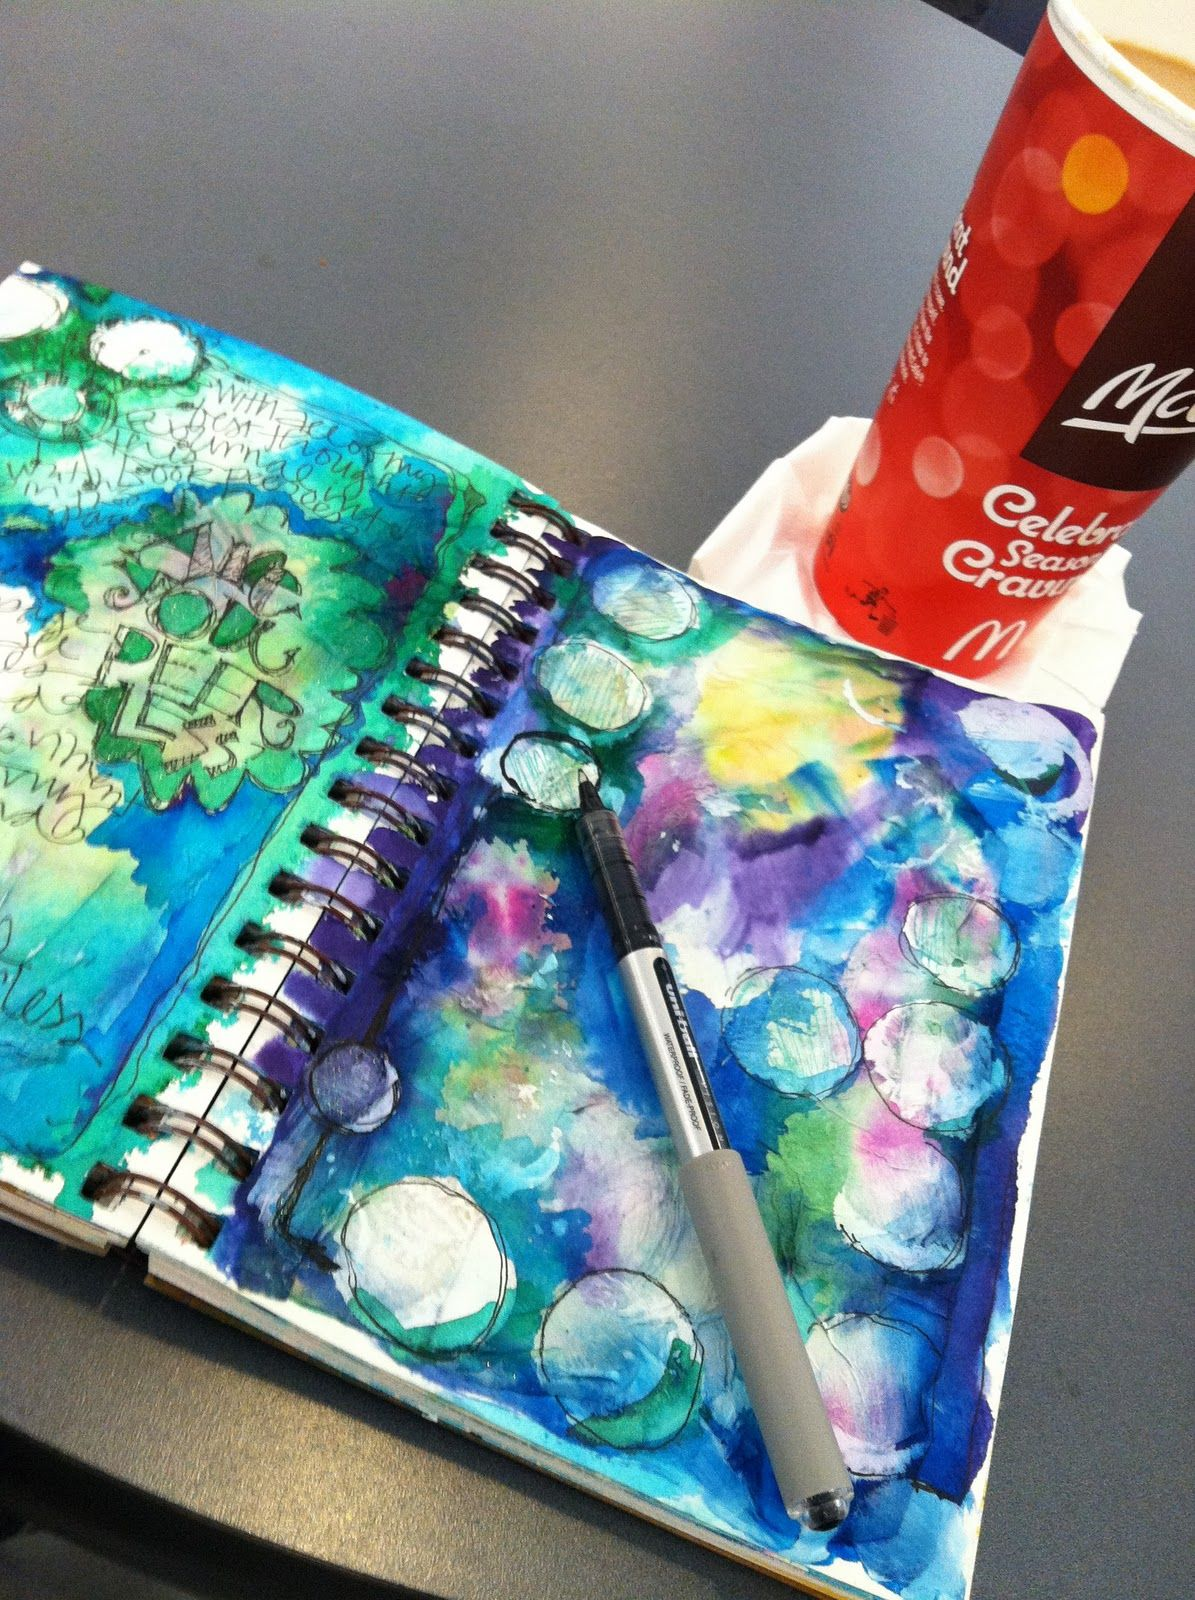 Weekly color play prompts http://joannezsharpe.blogspot.com/2011/12/artful-color-play-prompts.html